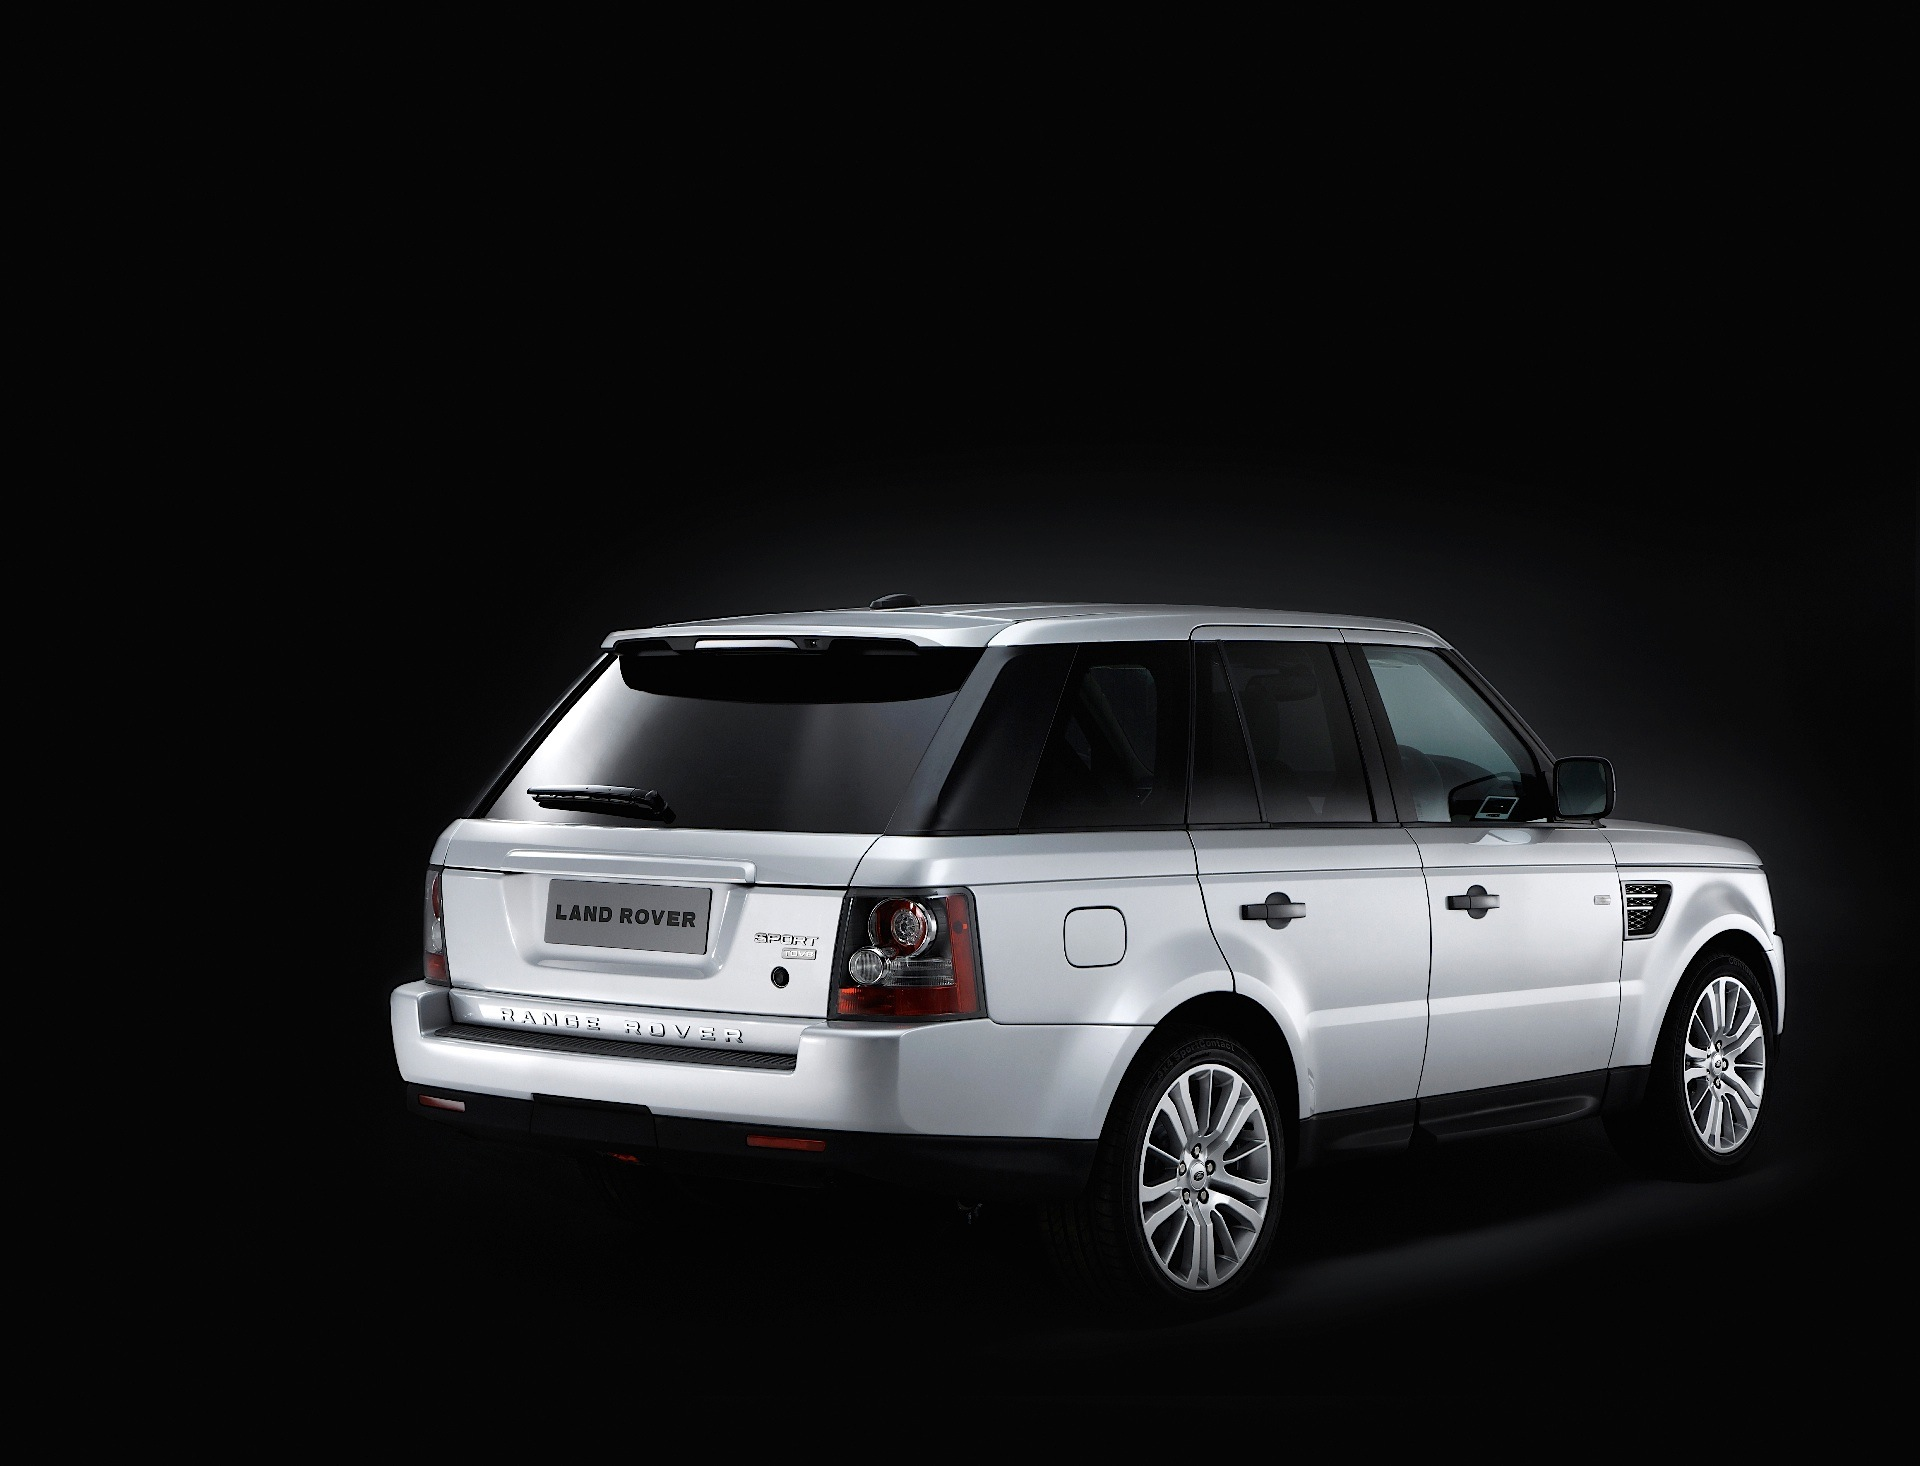 land rover range rover sport specs 2009 2010 2011 2012 2013 autoevolution. Black Bedroom Furniture Sets. Home Design Ideas